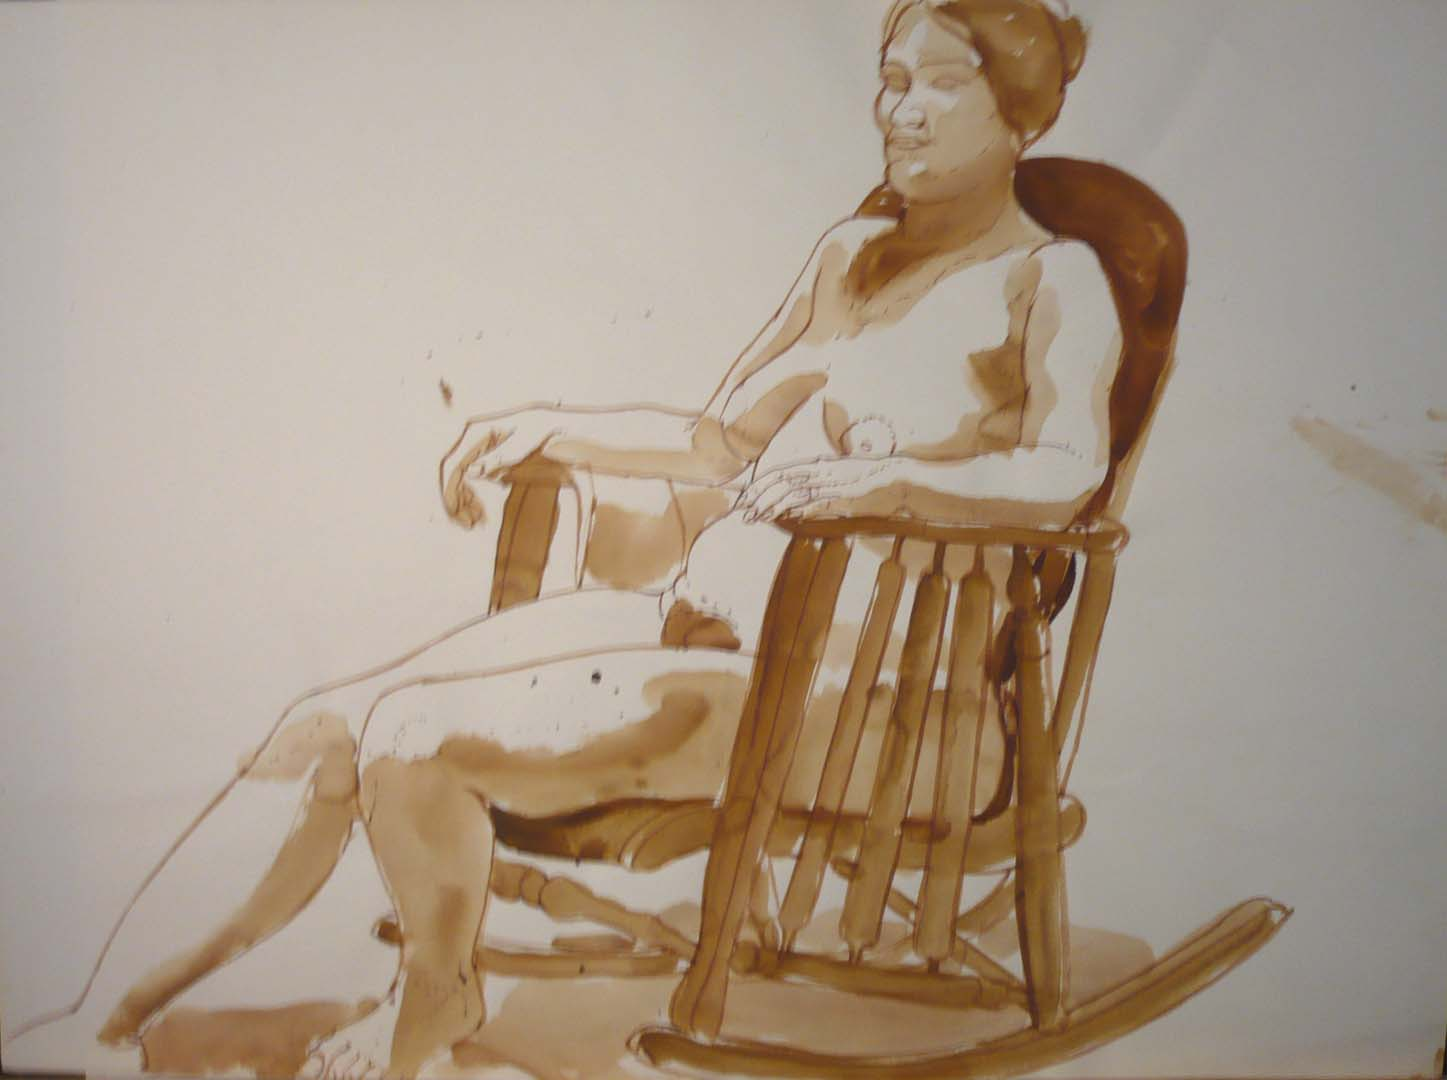 Female Seated on Rocking Chair Sepia 22 x 29.875